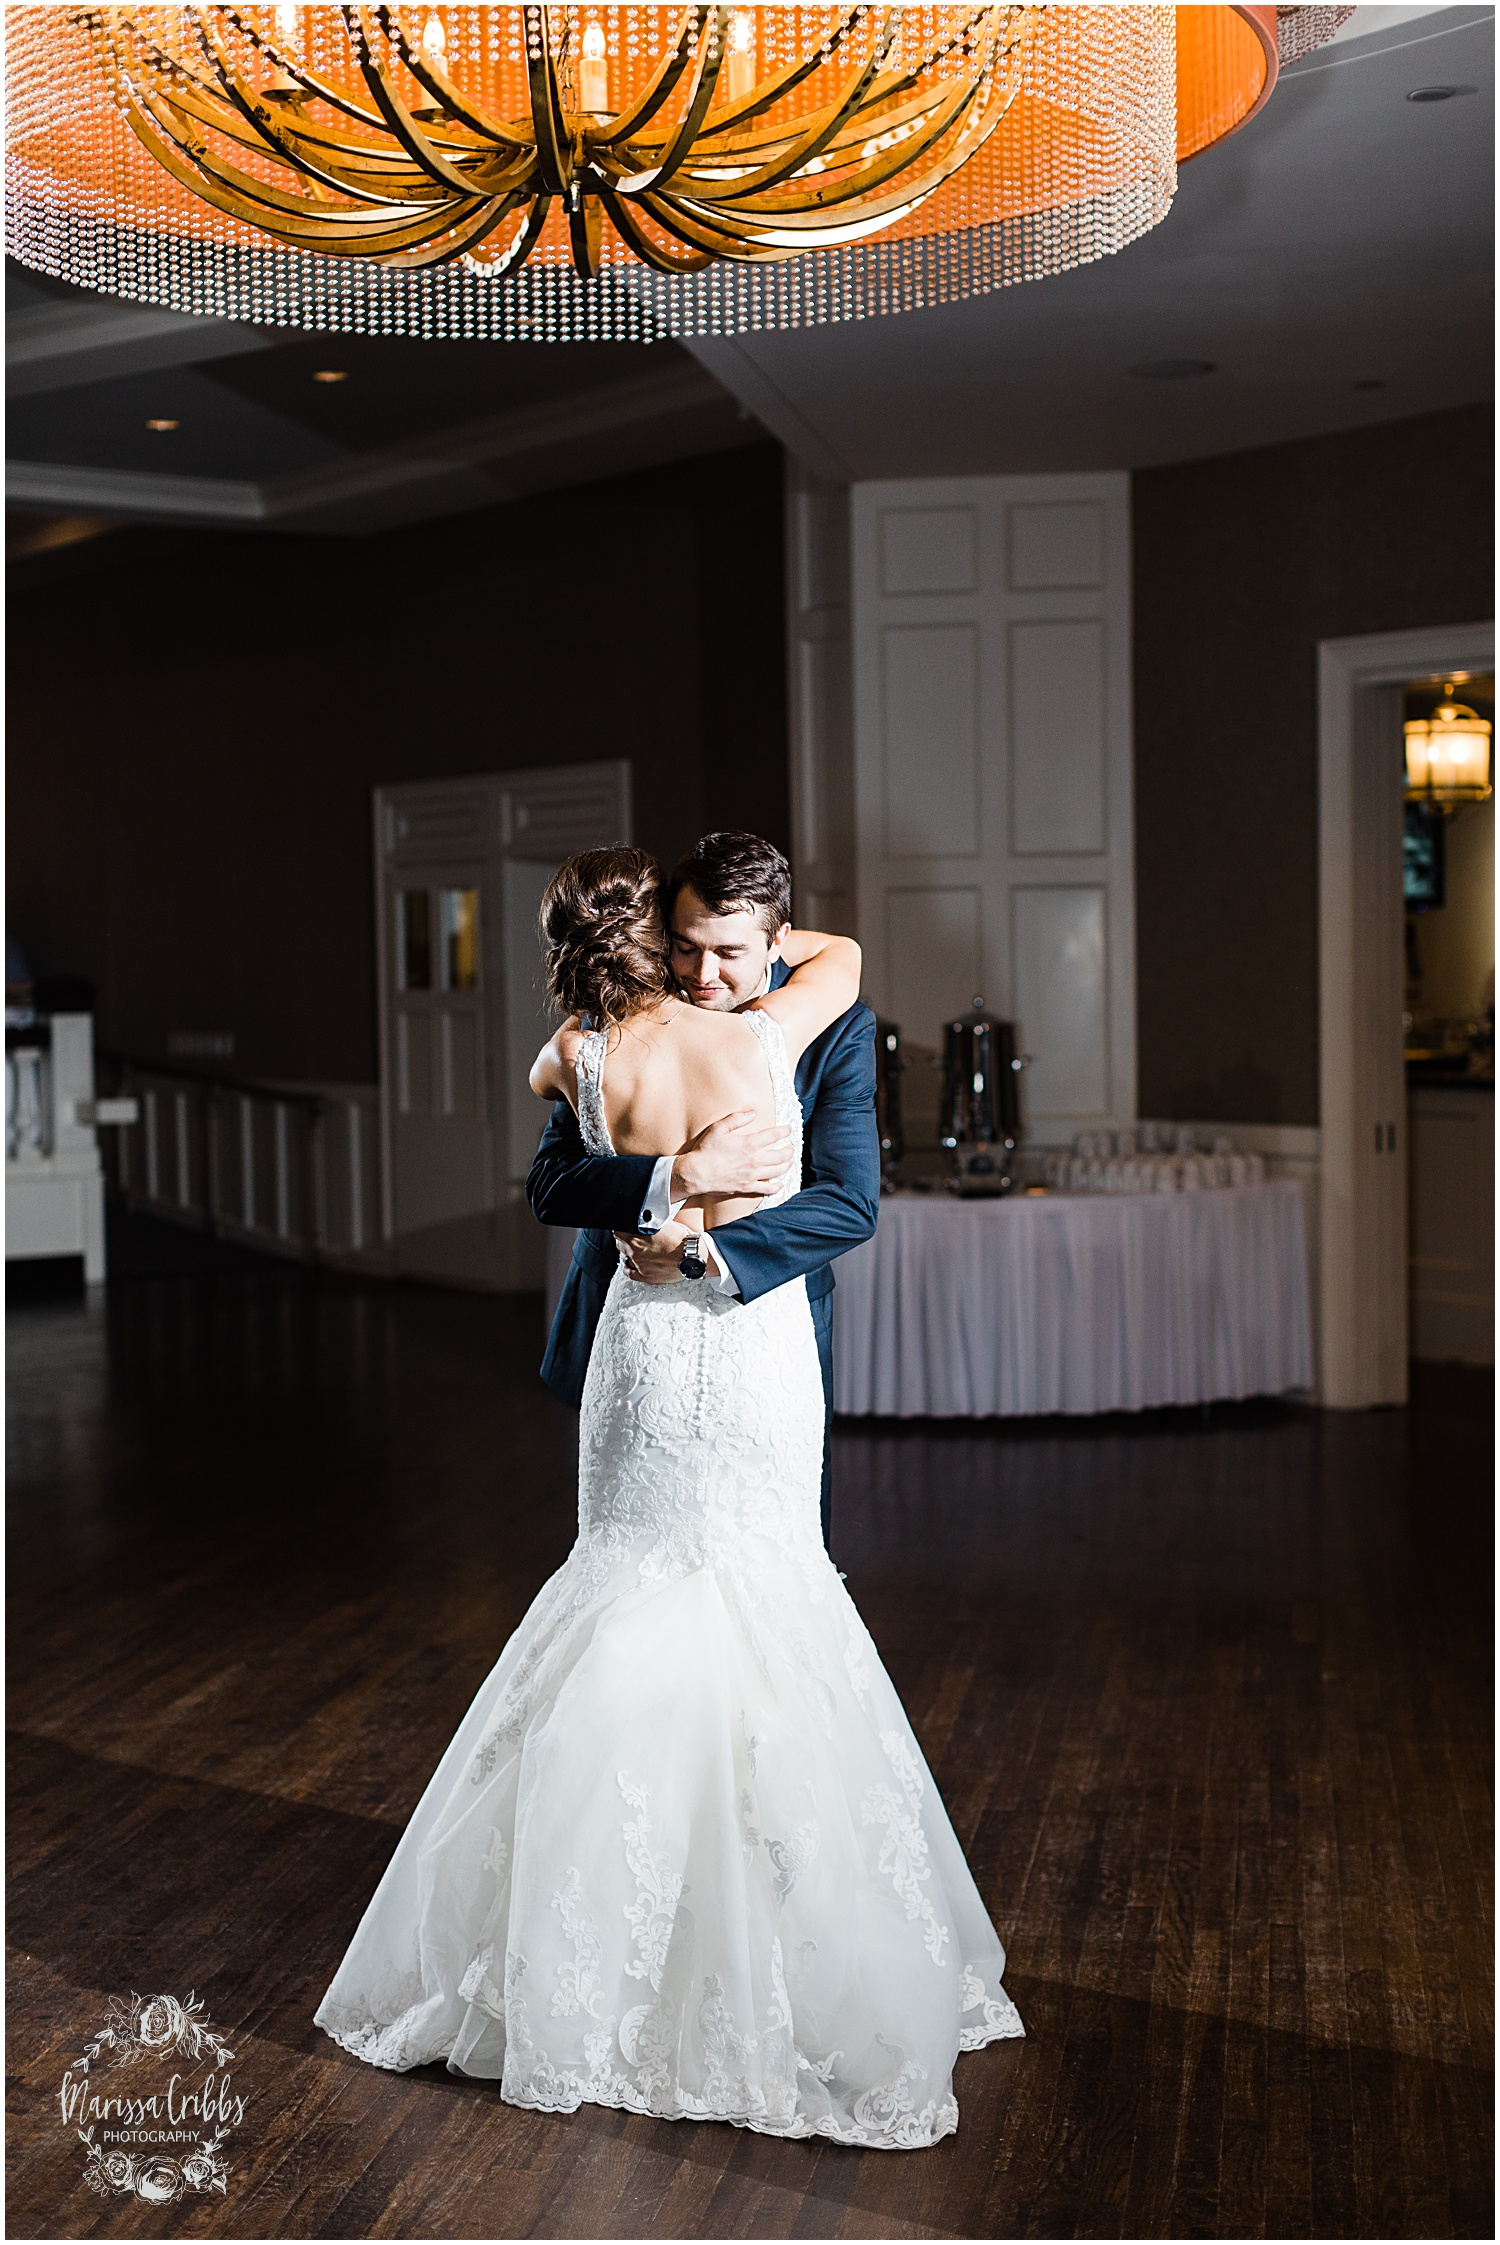 MEGAN & DEREK WEDDING BLOG | MARISSA CRIBBS PHOTOGRAPHY_8228.jpg